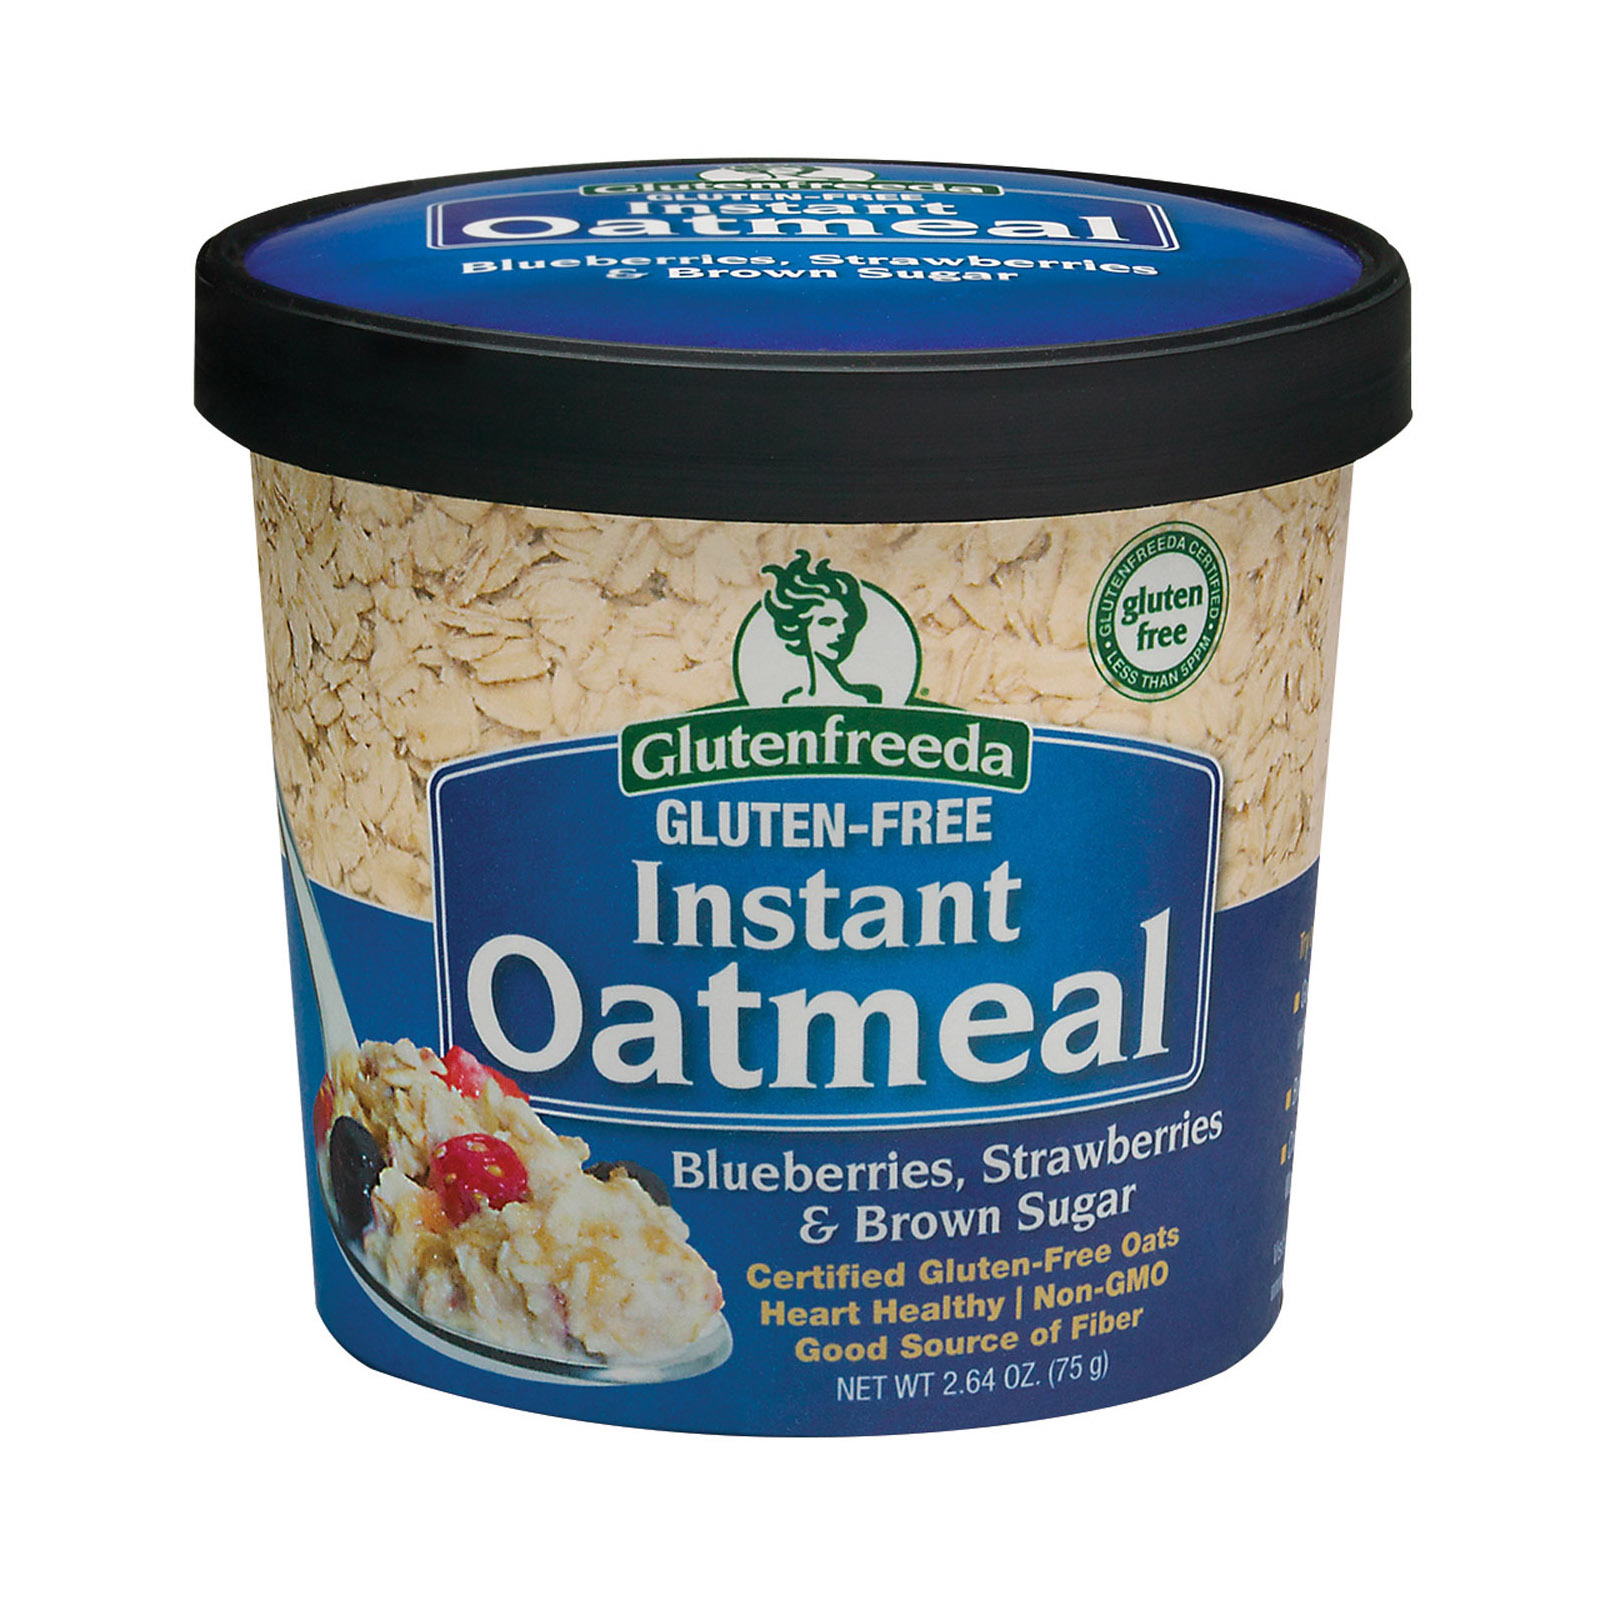 Gluten Freeda Instant Oatmeal Cup - Blueberry, Strawberries and Brown Sugar - Case of 12 - 2.64 oz.